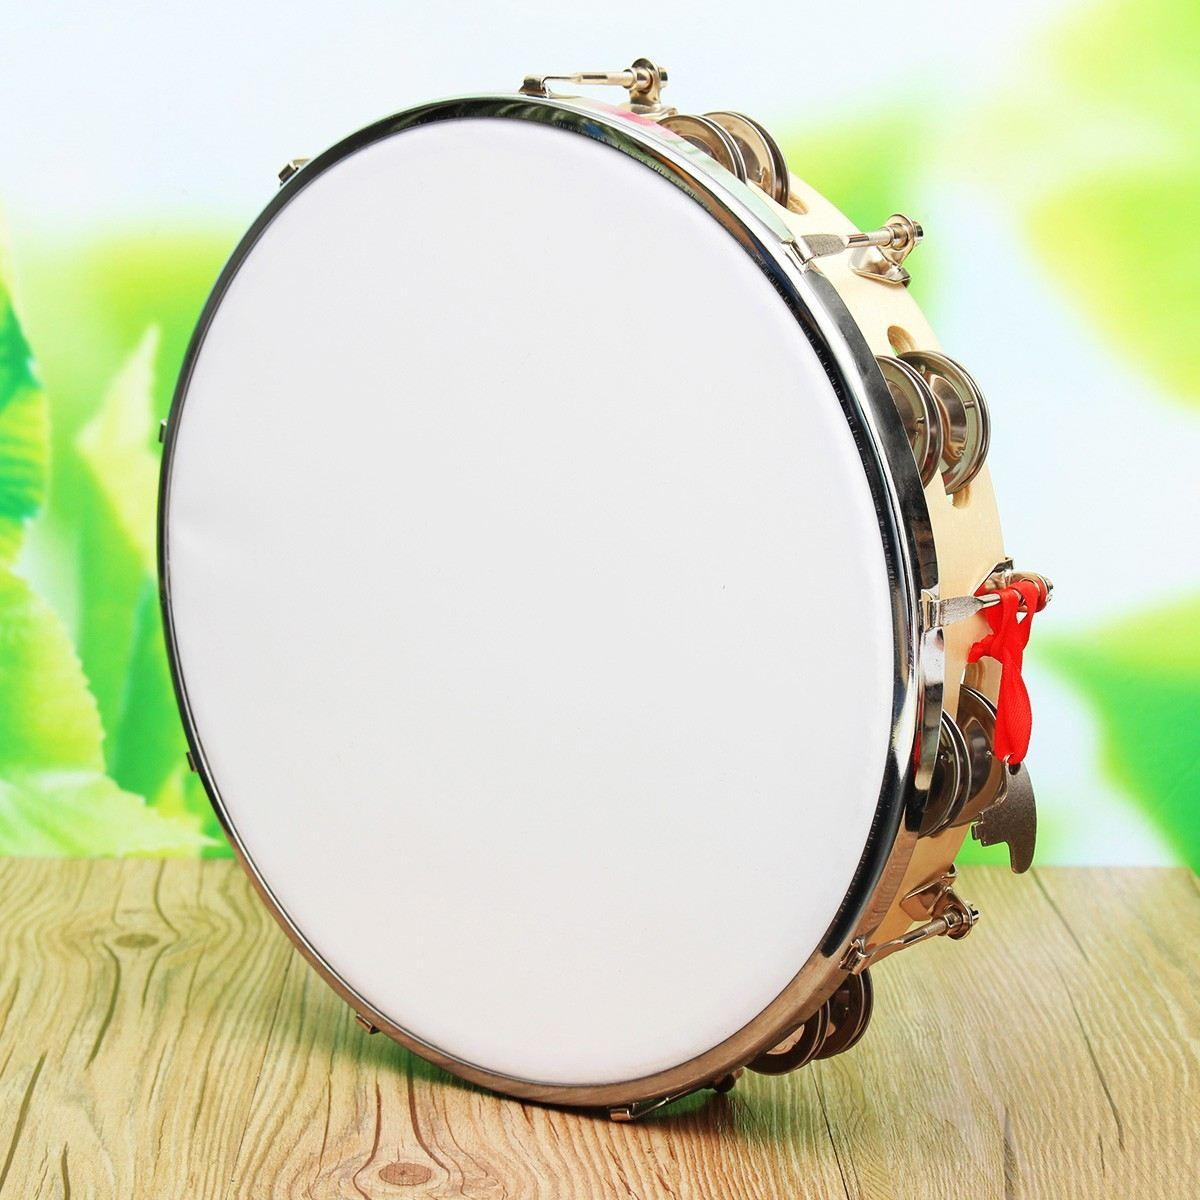 2019 New Arrival 10 Capoeira Leather Pandeiro Drum Music Instruments Tambourine Percussion Membranophone Gifts For Music Lovers From Great89, ...